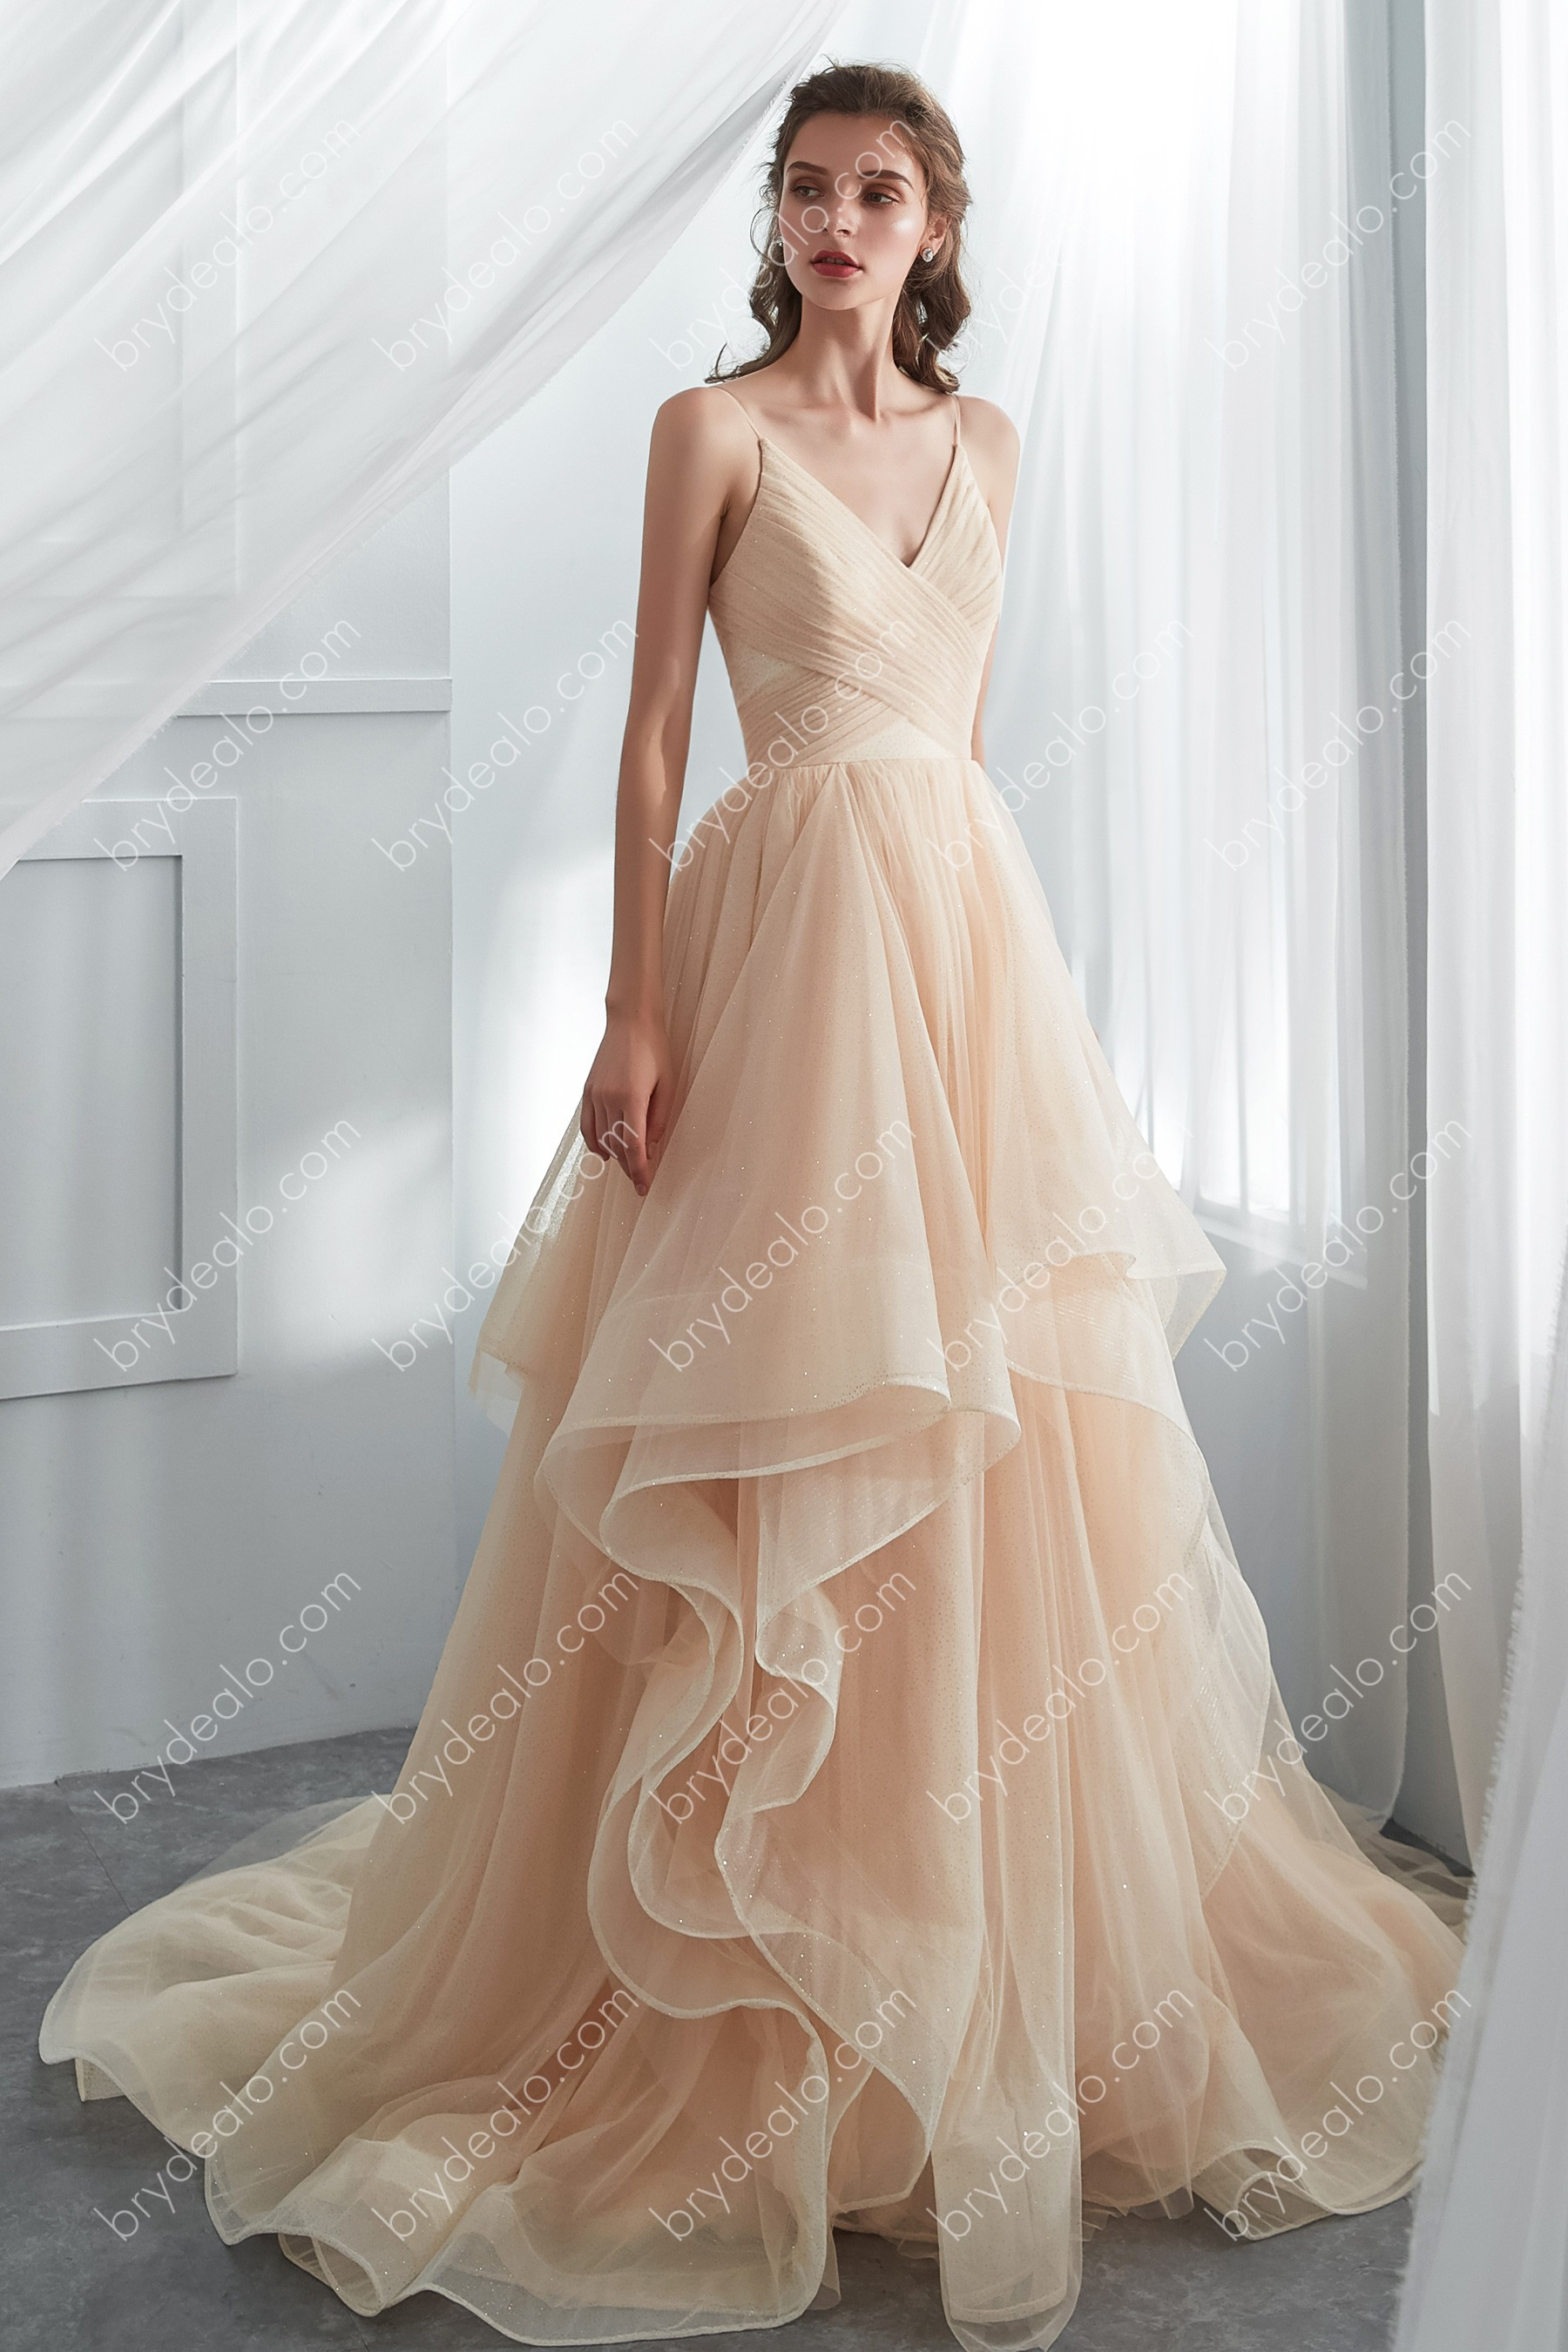 Shimmer Champagne Tulle Layered Wedding Ballgown